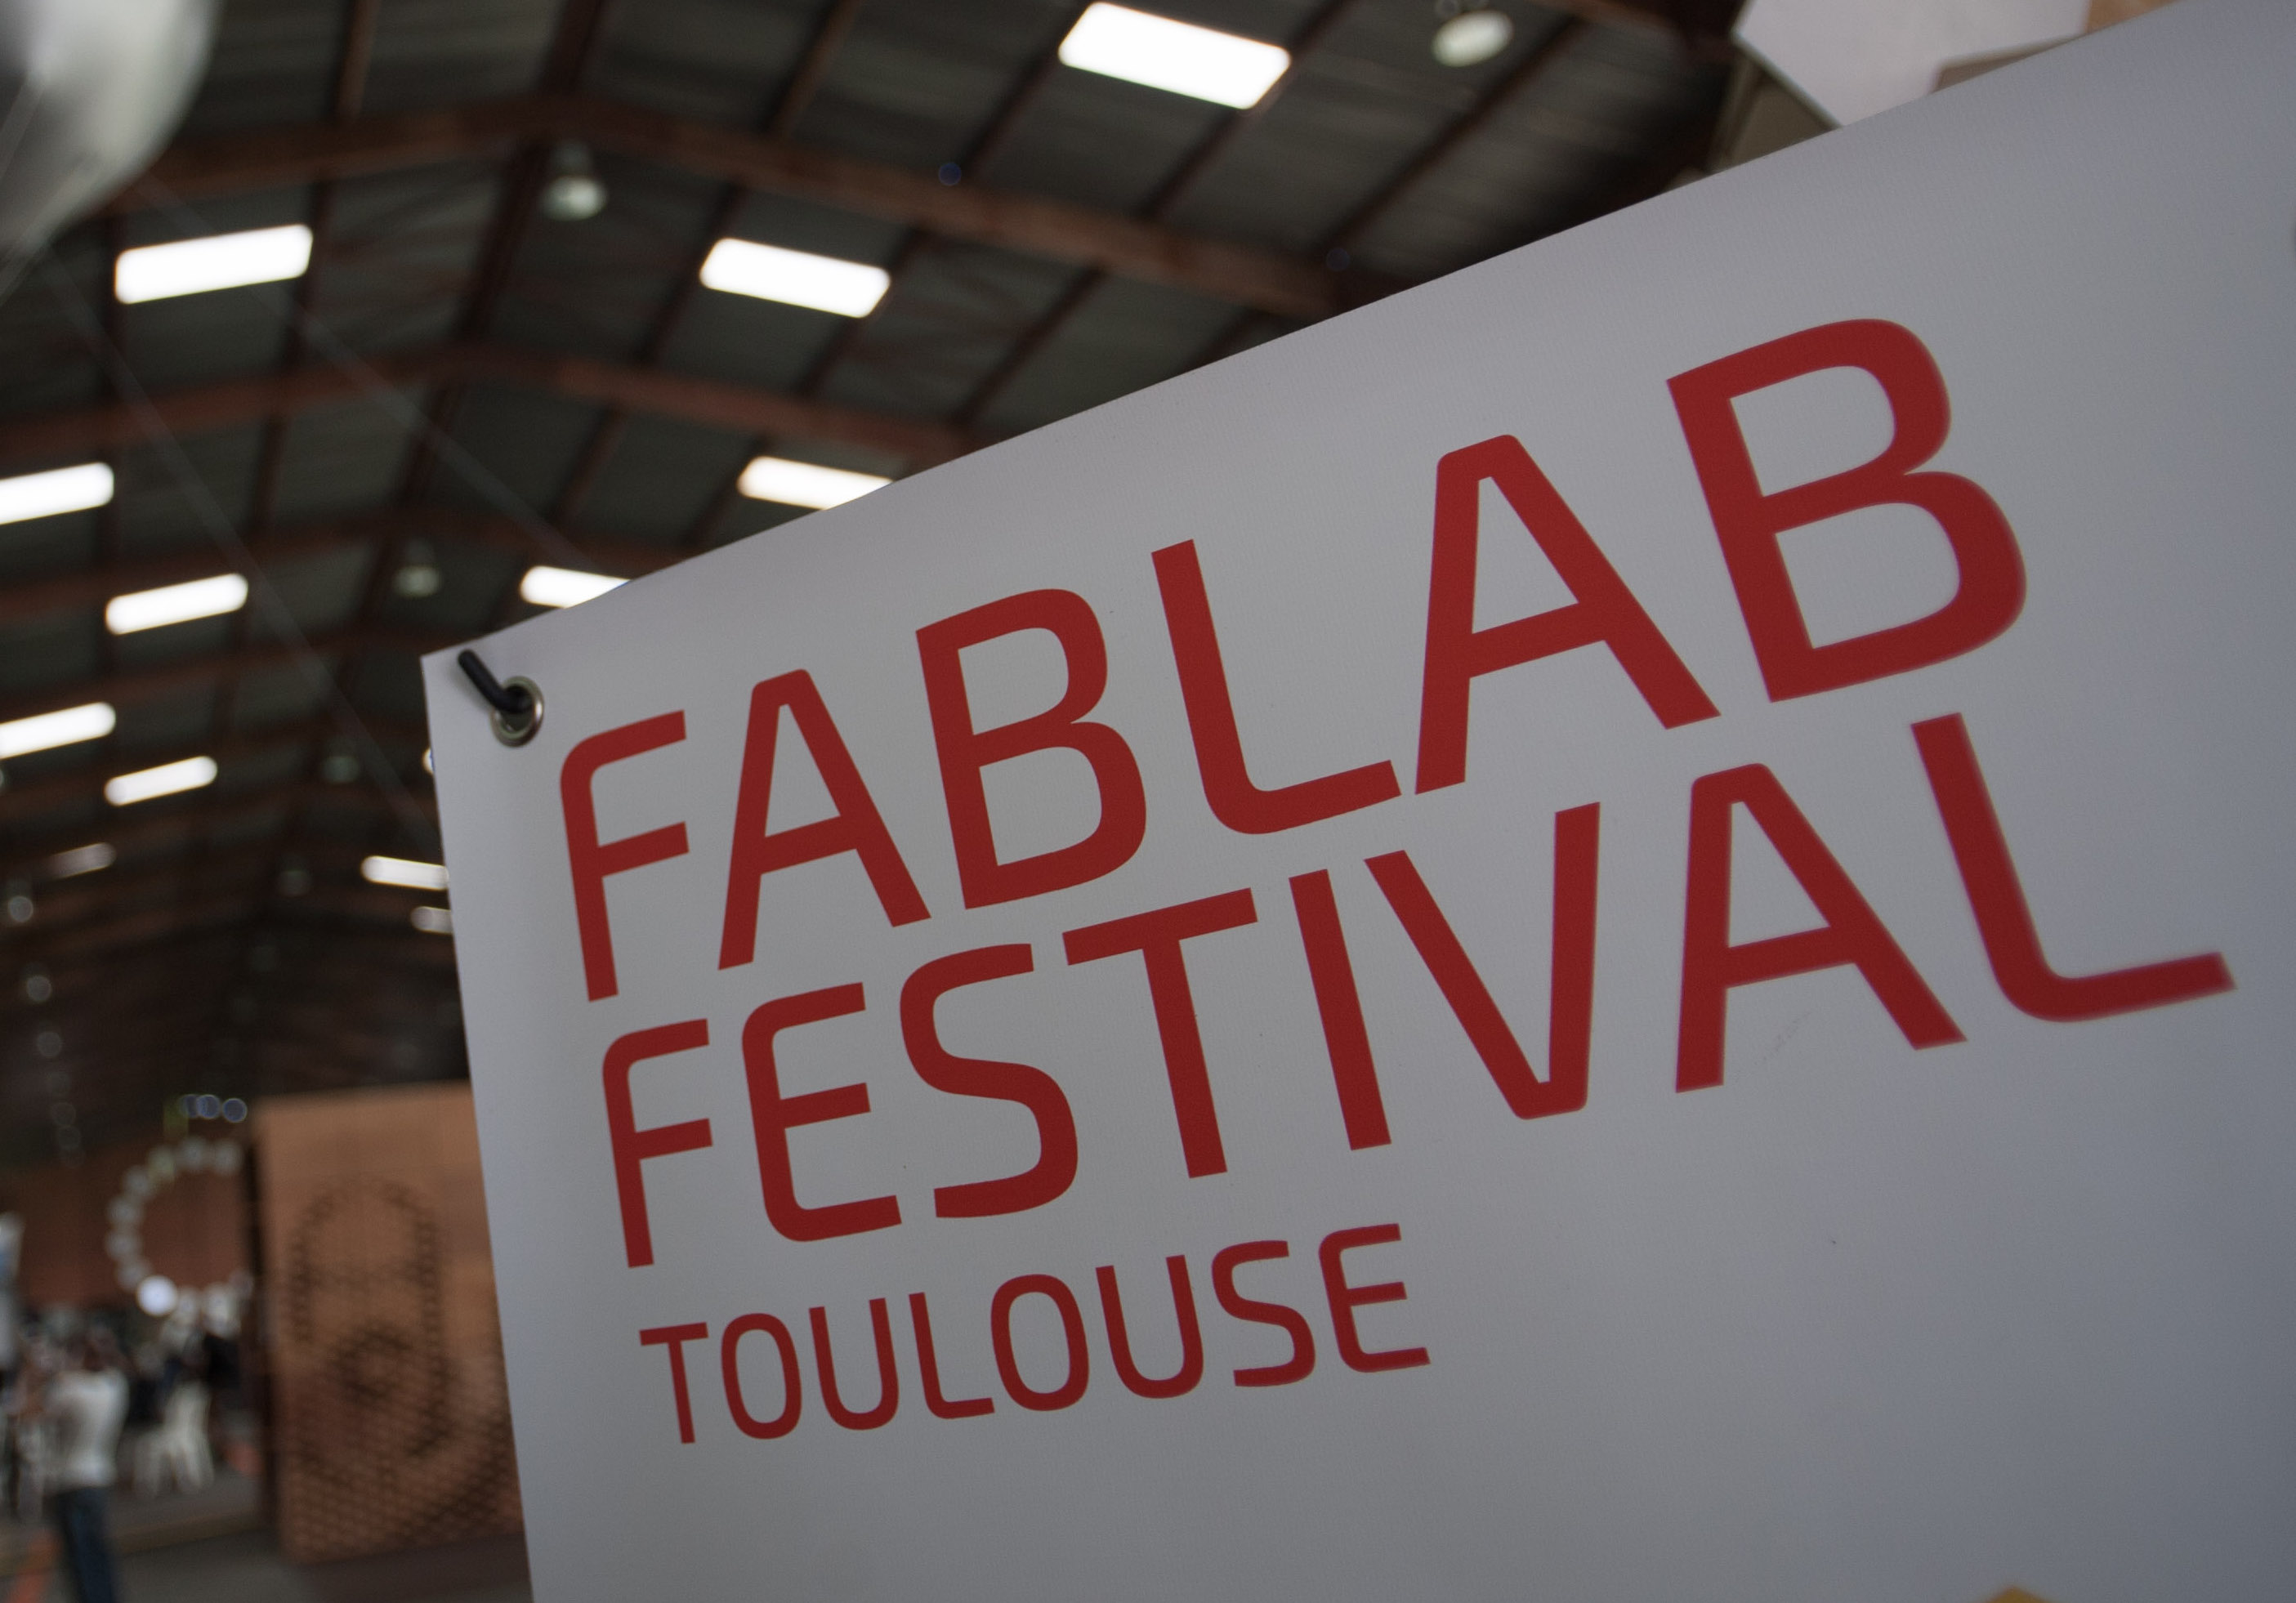 Fabricademy at Fab Lab Festival Touluse